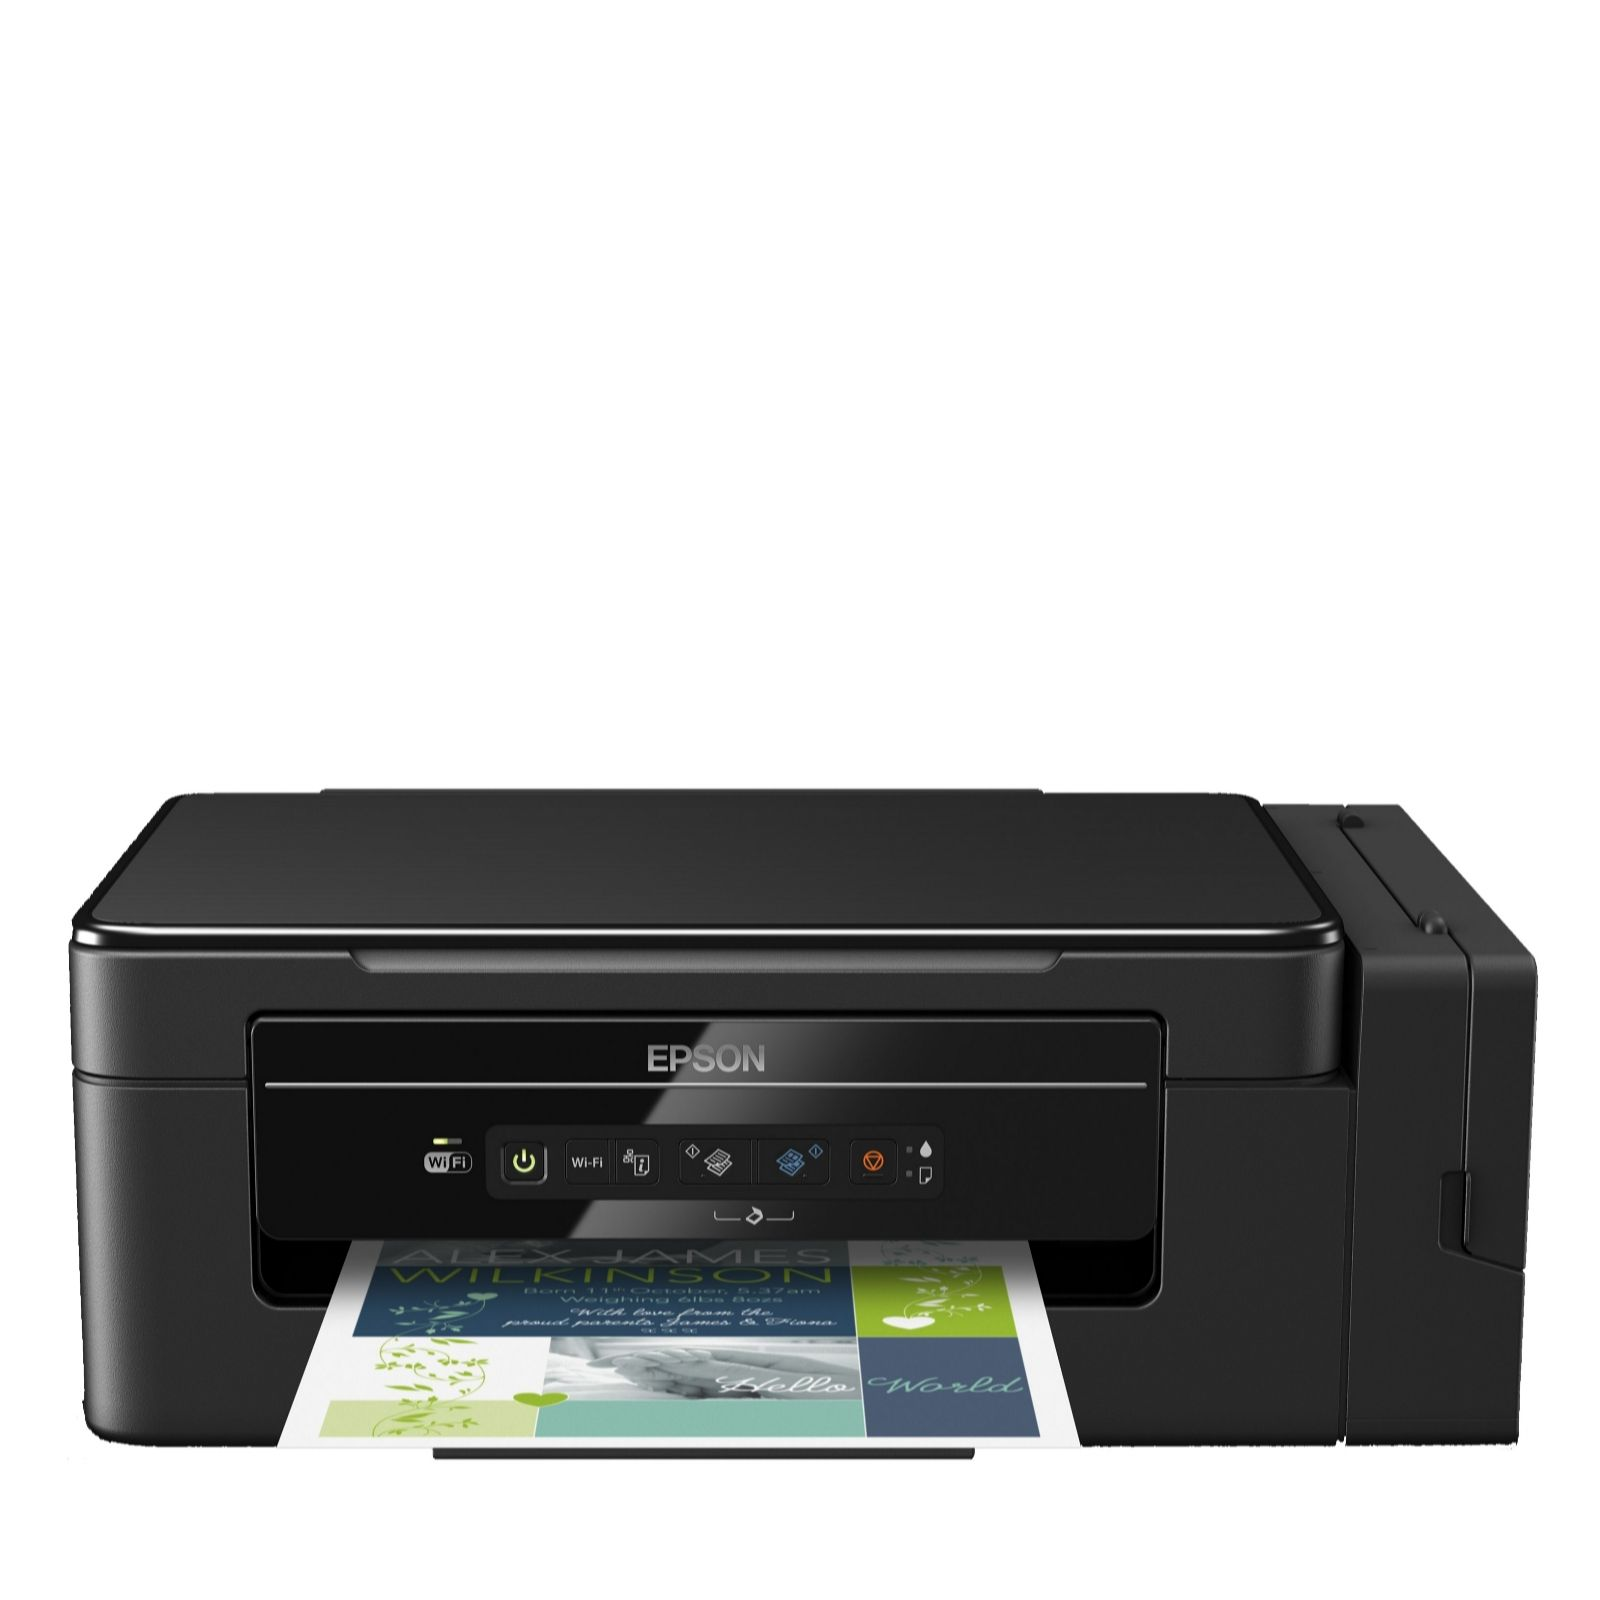 Epson Ecotank 3 in 1 Printer with Wi-Fi Paper & Ink - QVC UK